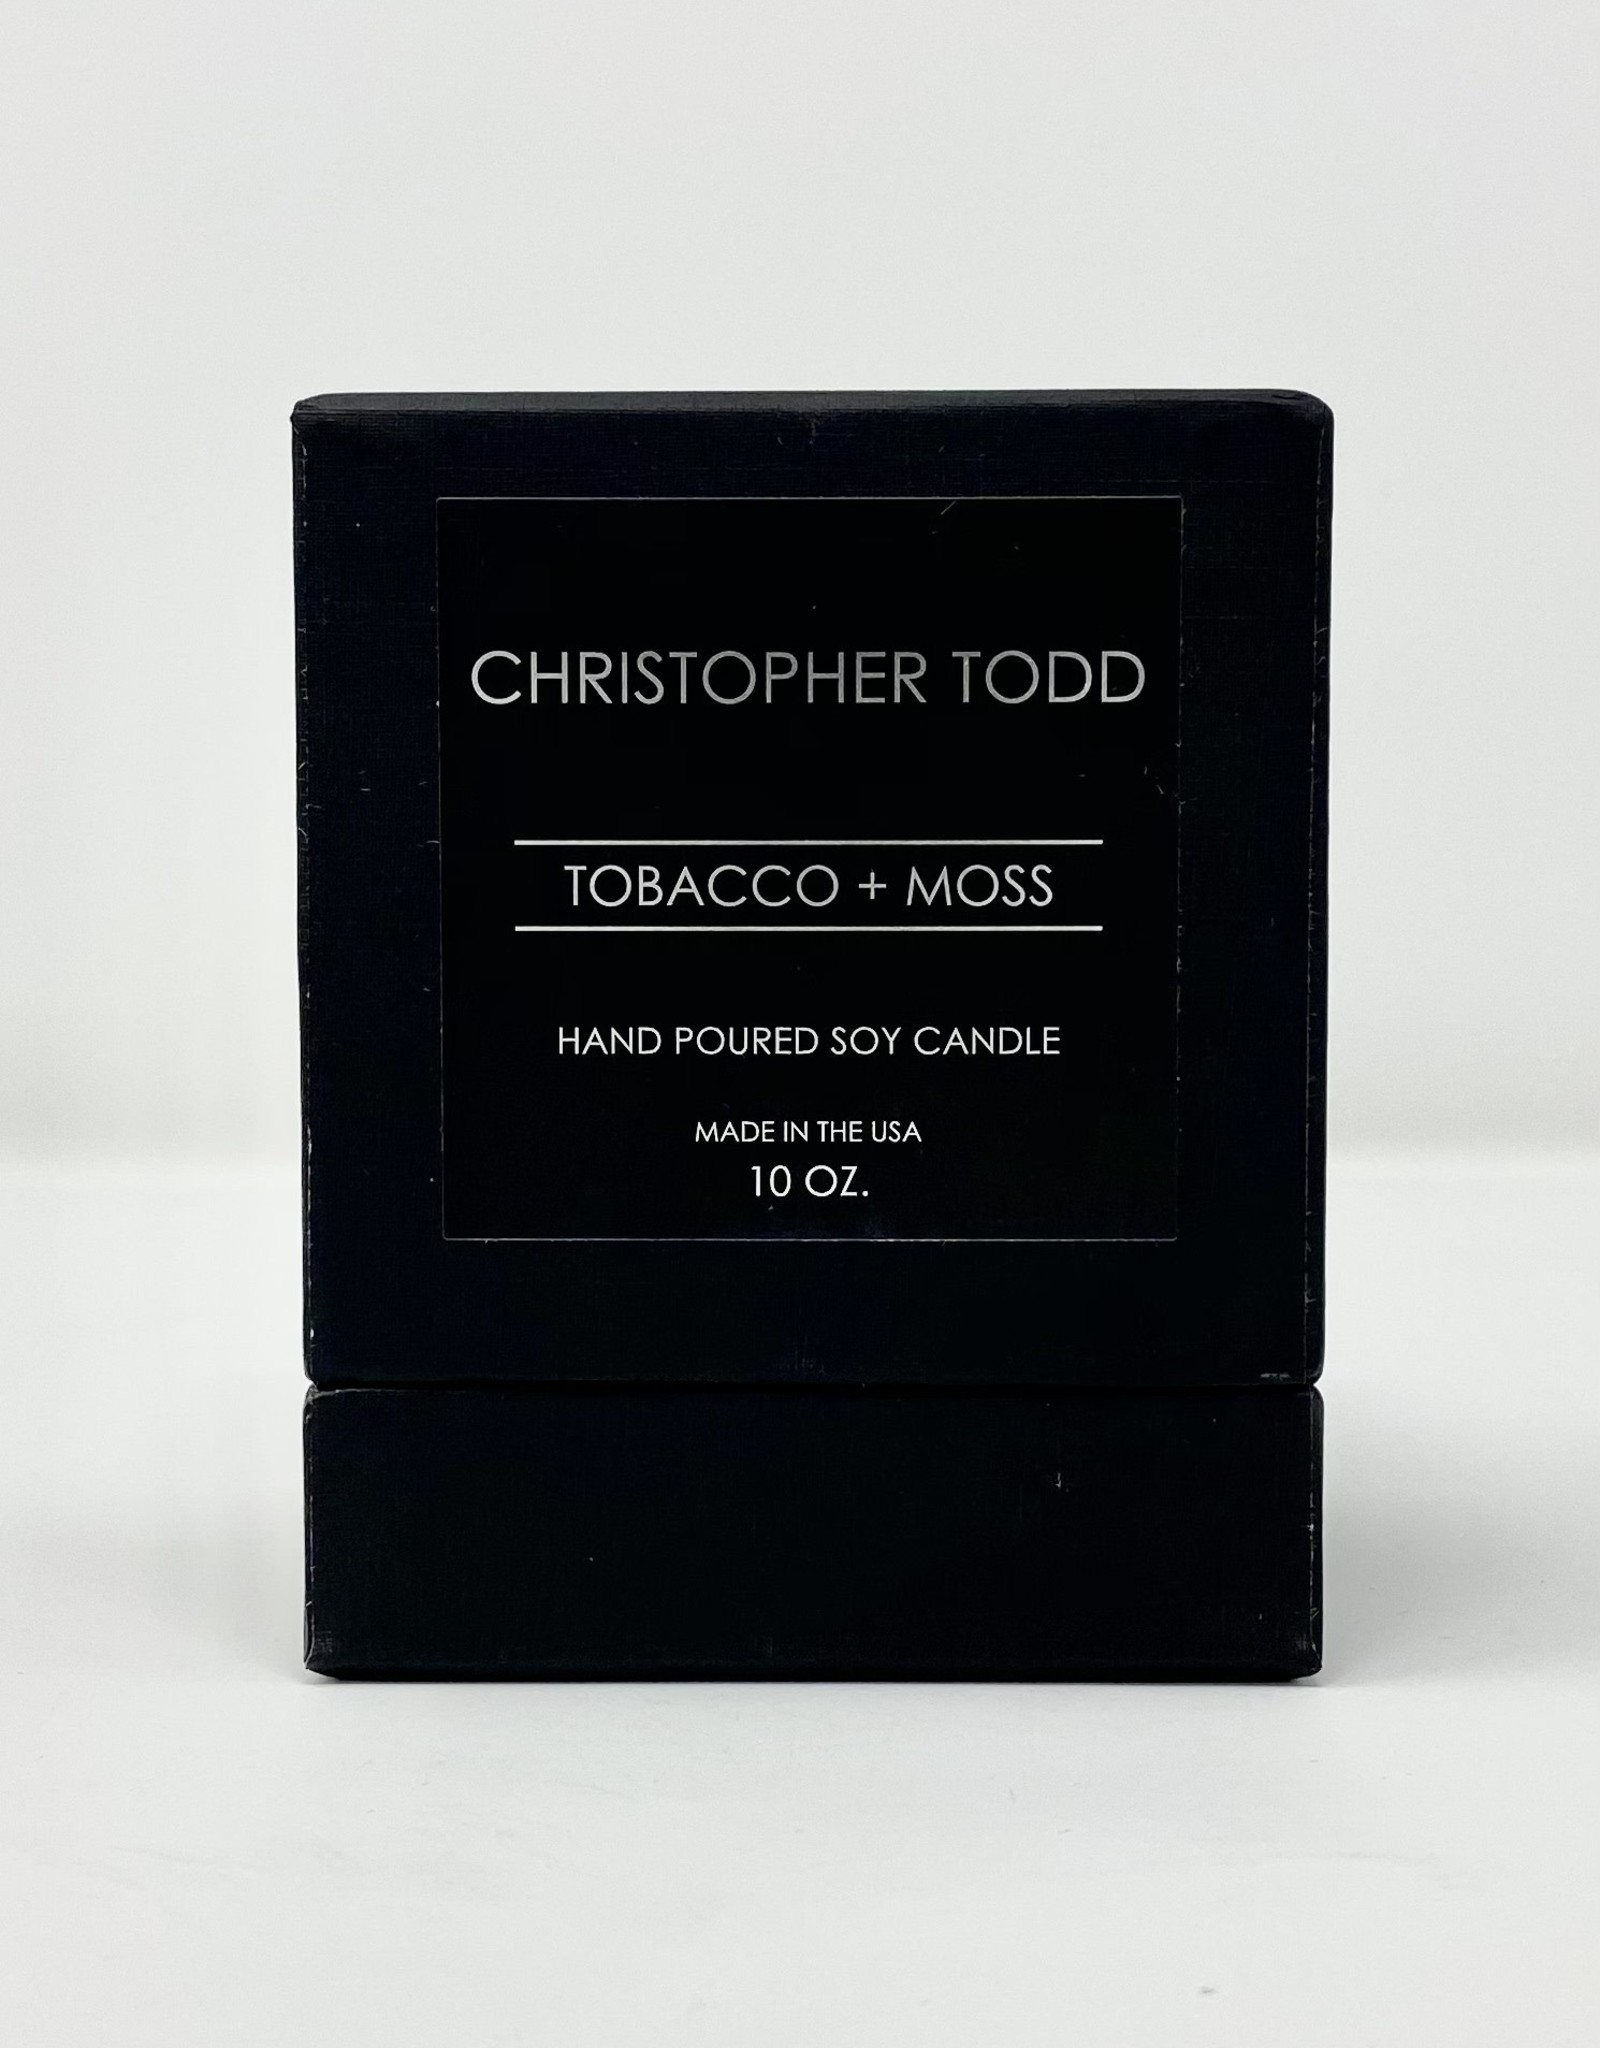 GP-Co Tobacco + Moss Christopher Todd Candle